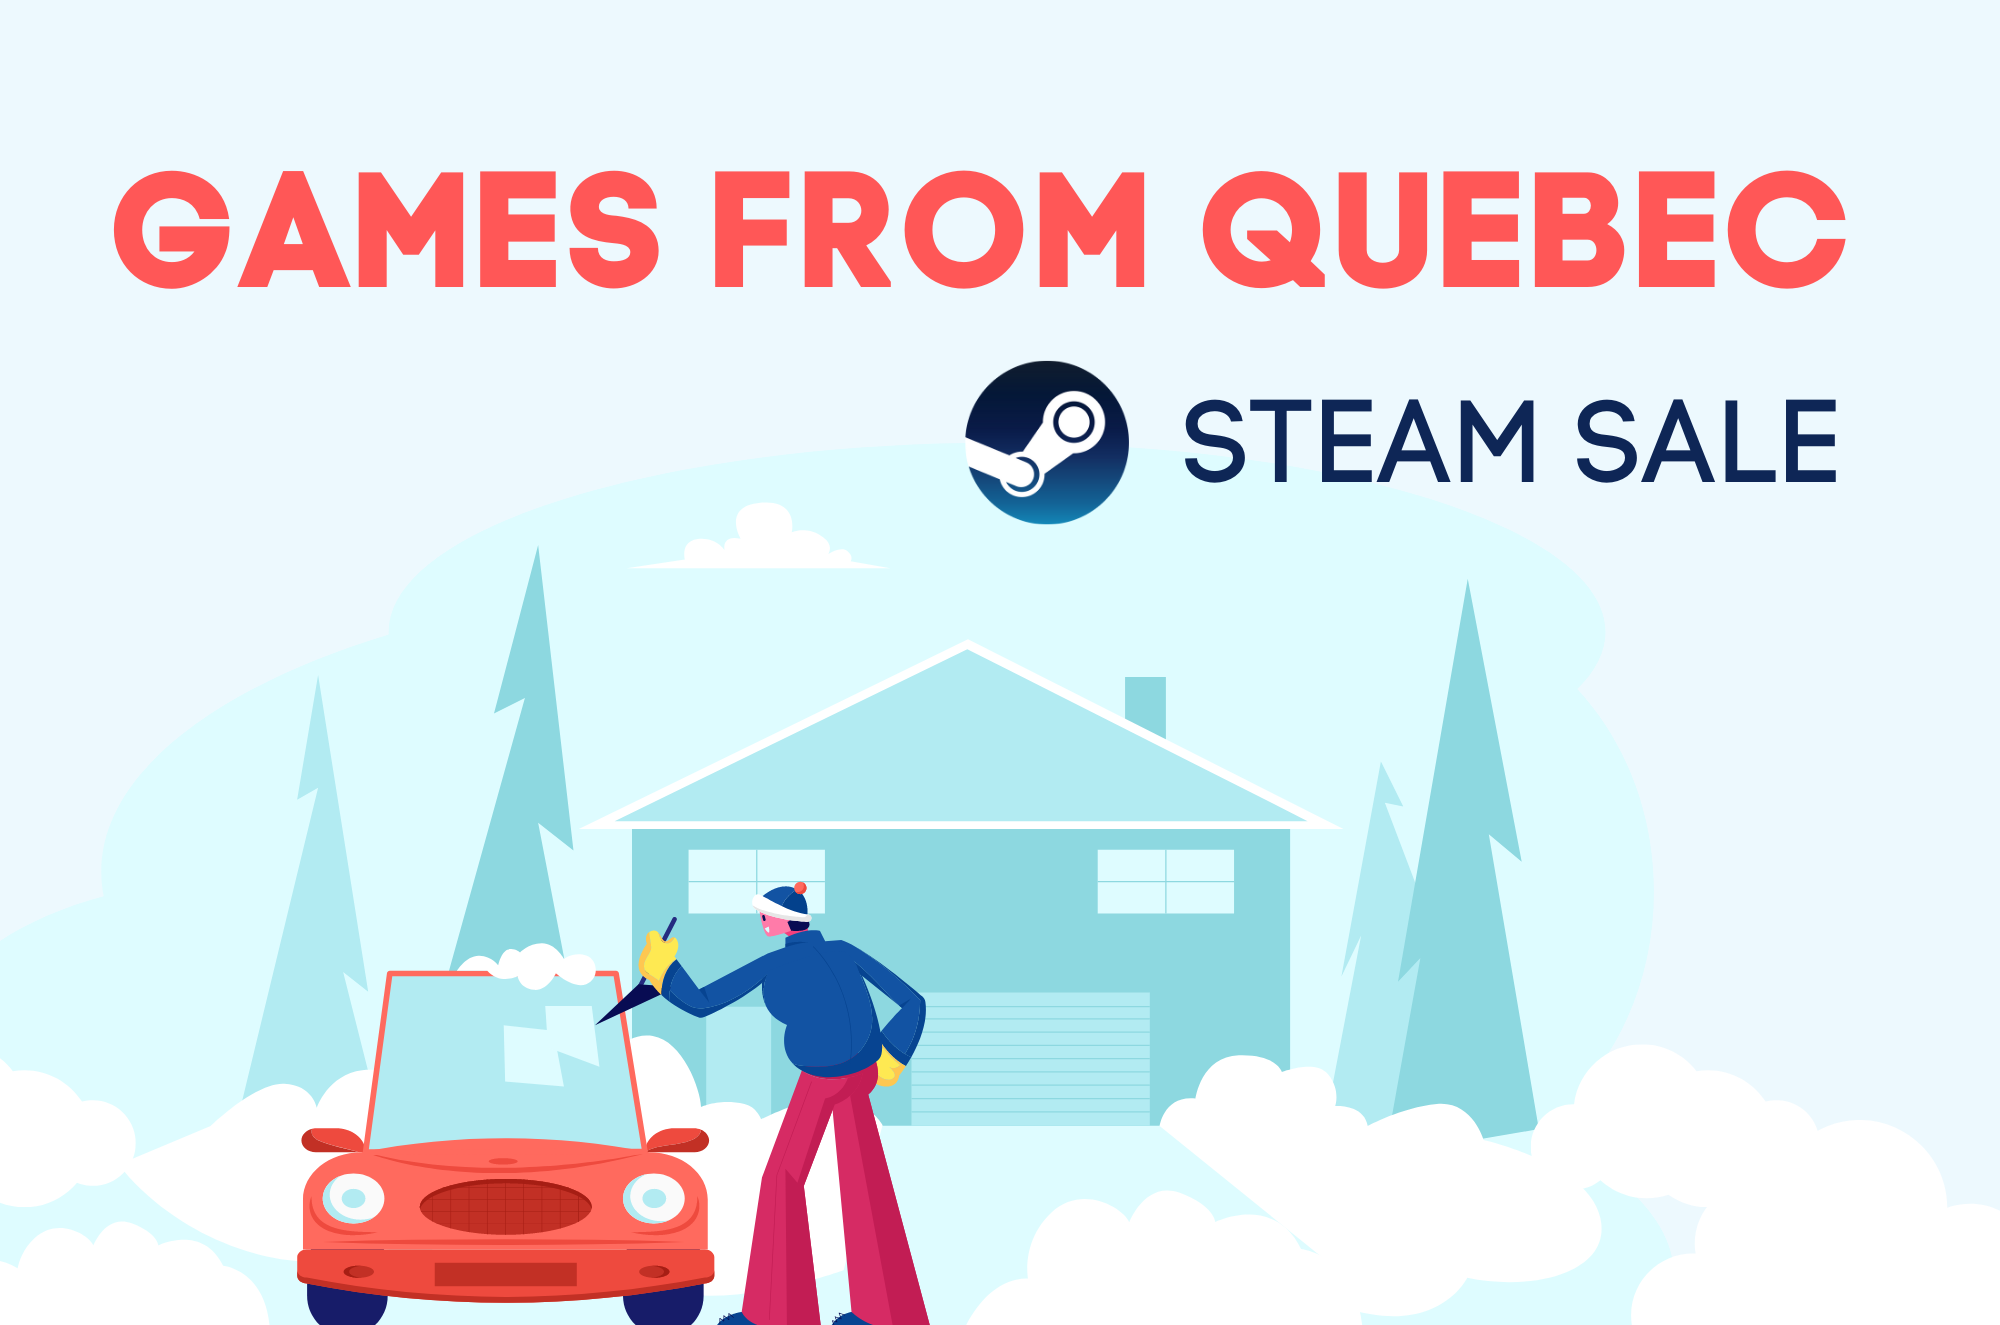 Games from Quebec Steam Sale